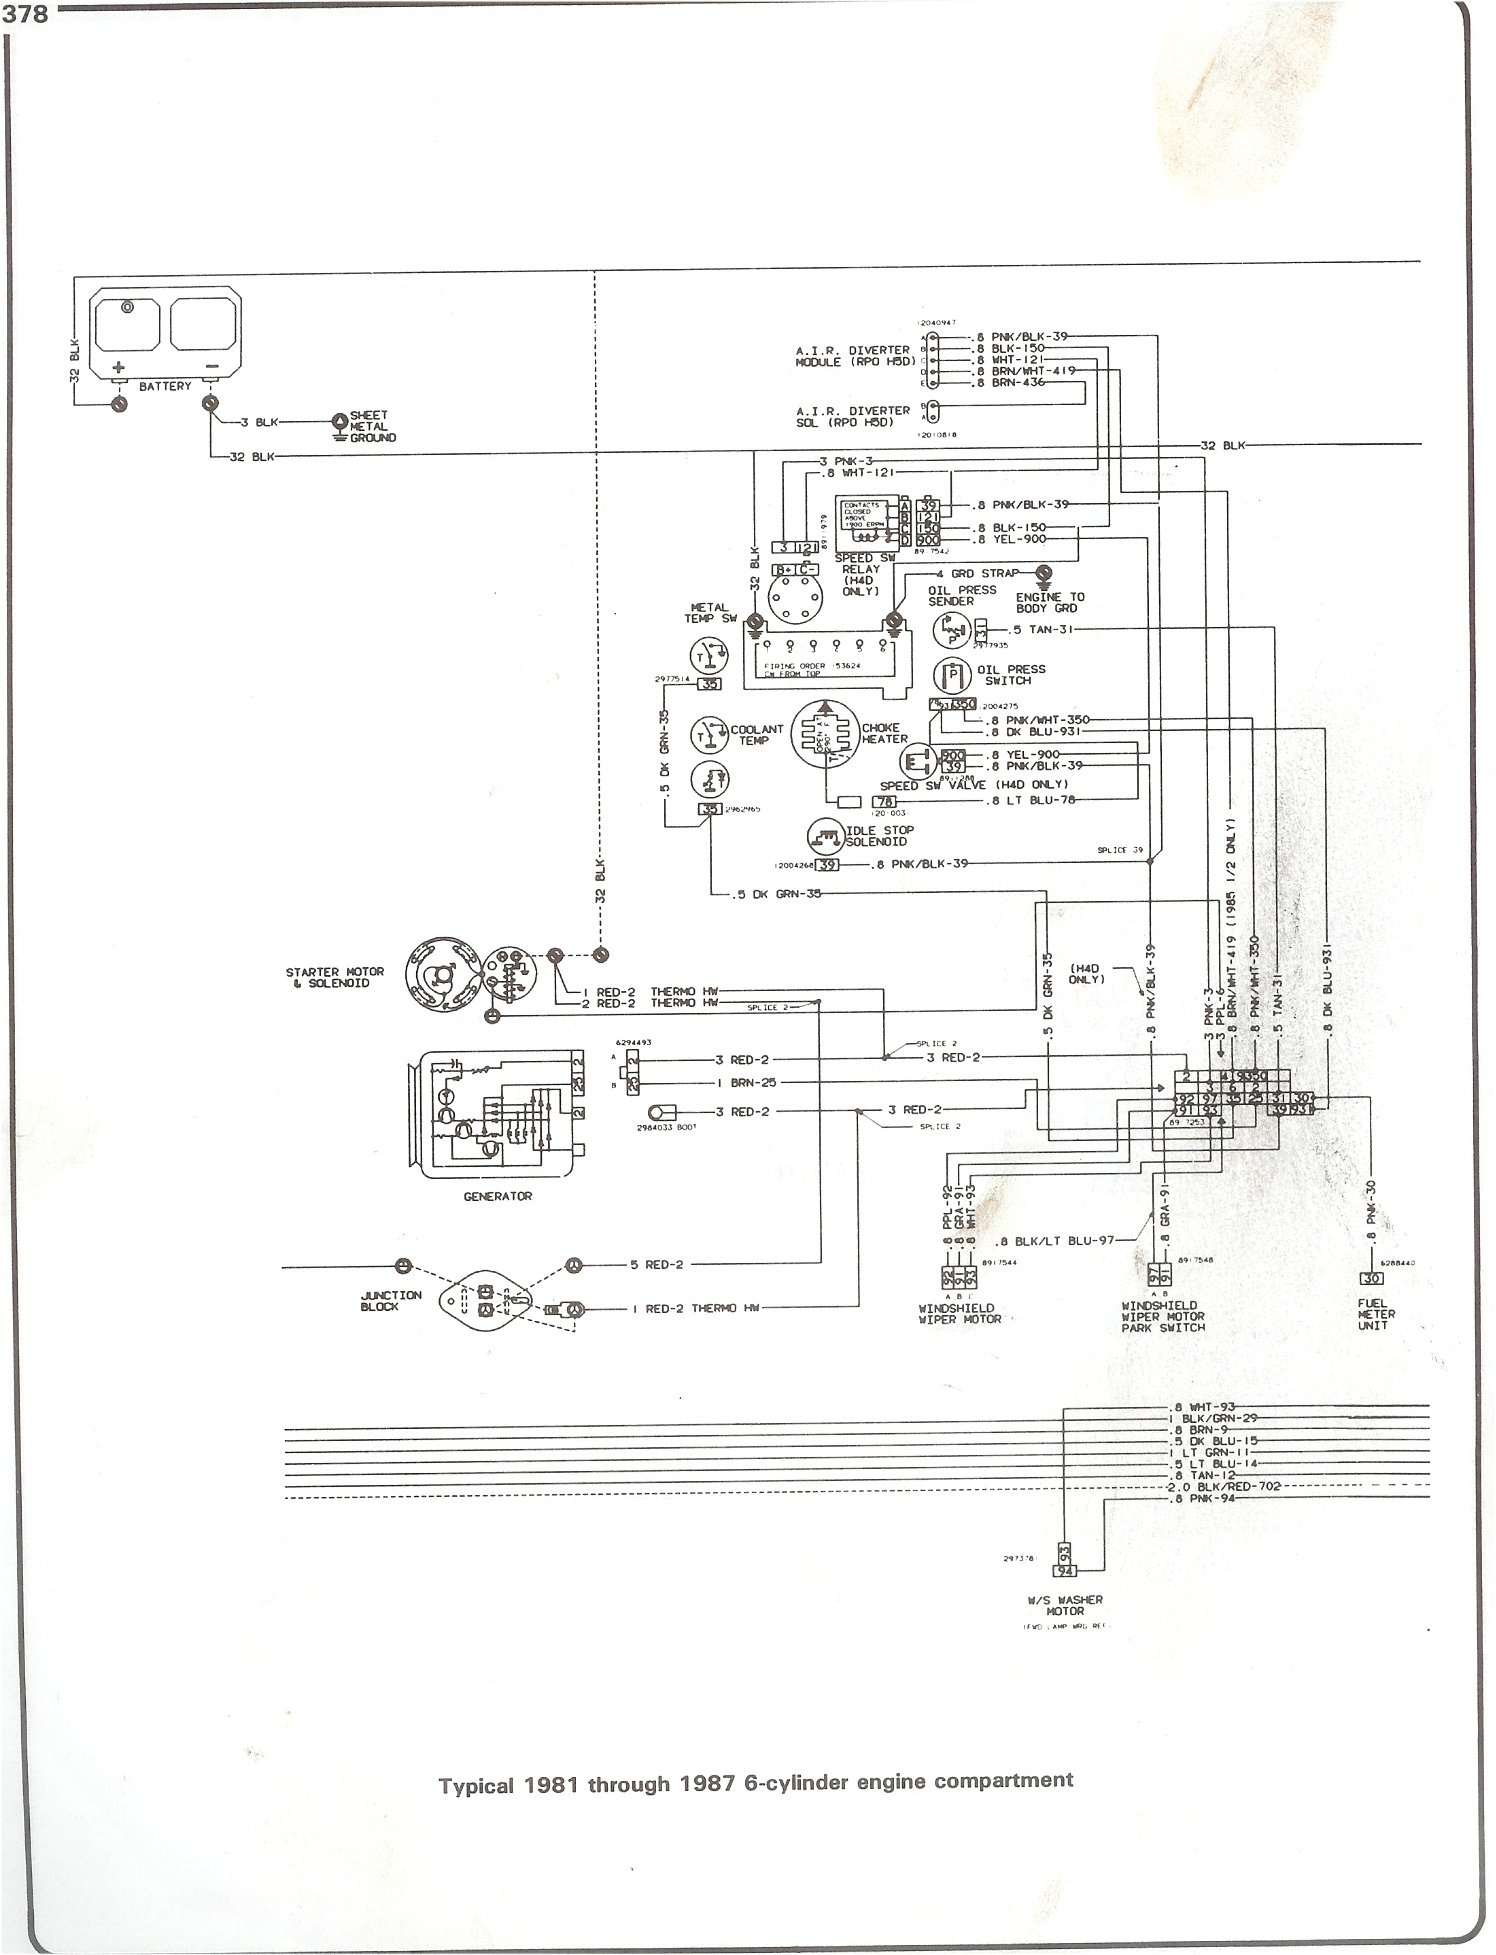 81 87_I6_engine complete 73 87 wiring diagrams wiring diagram for 1970 chevy c10 at gsmx.co